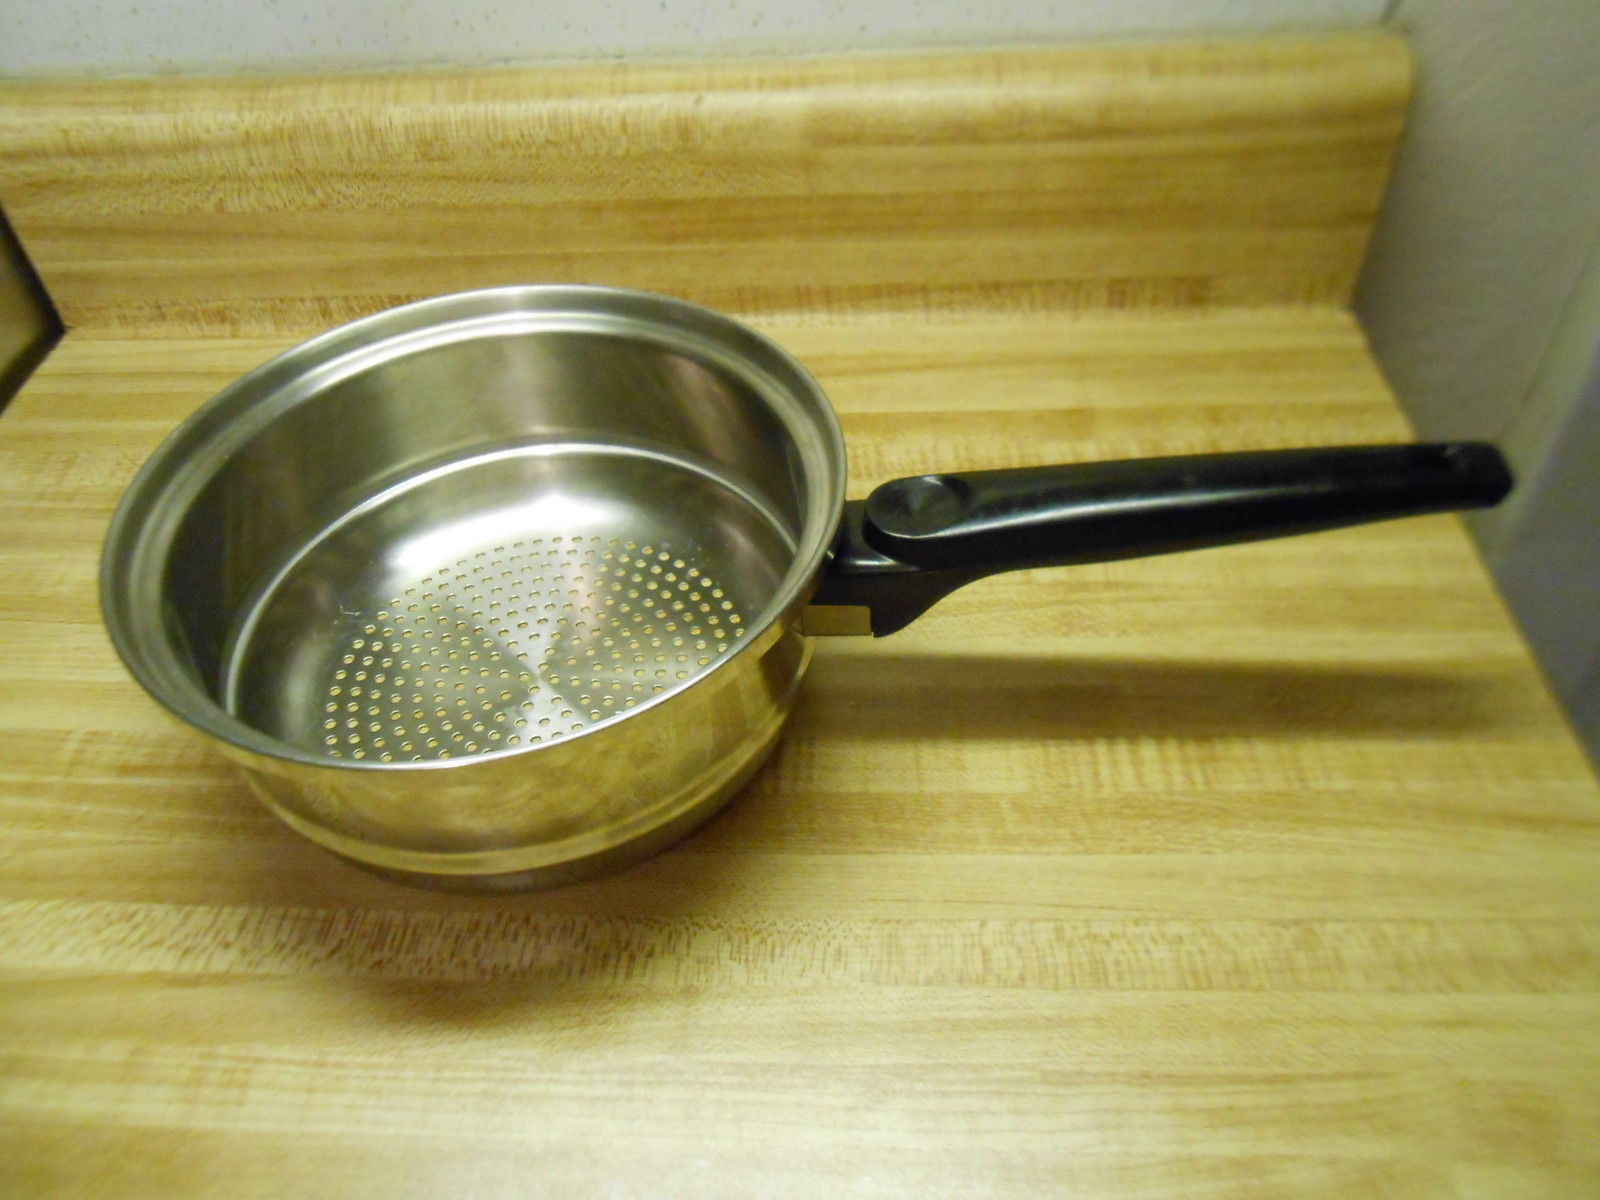 Primary image for stainless steel steamer insert pot 7 1/4 inch heavy duty pot very well made!